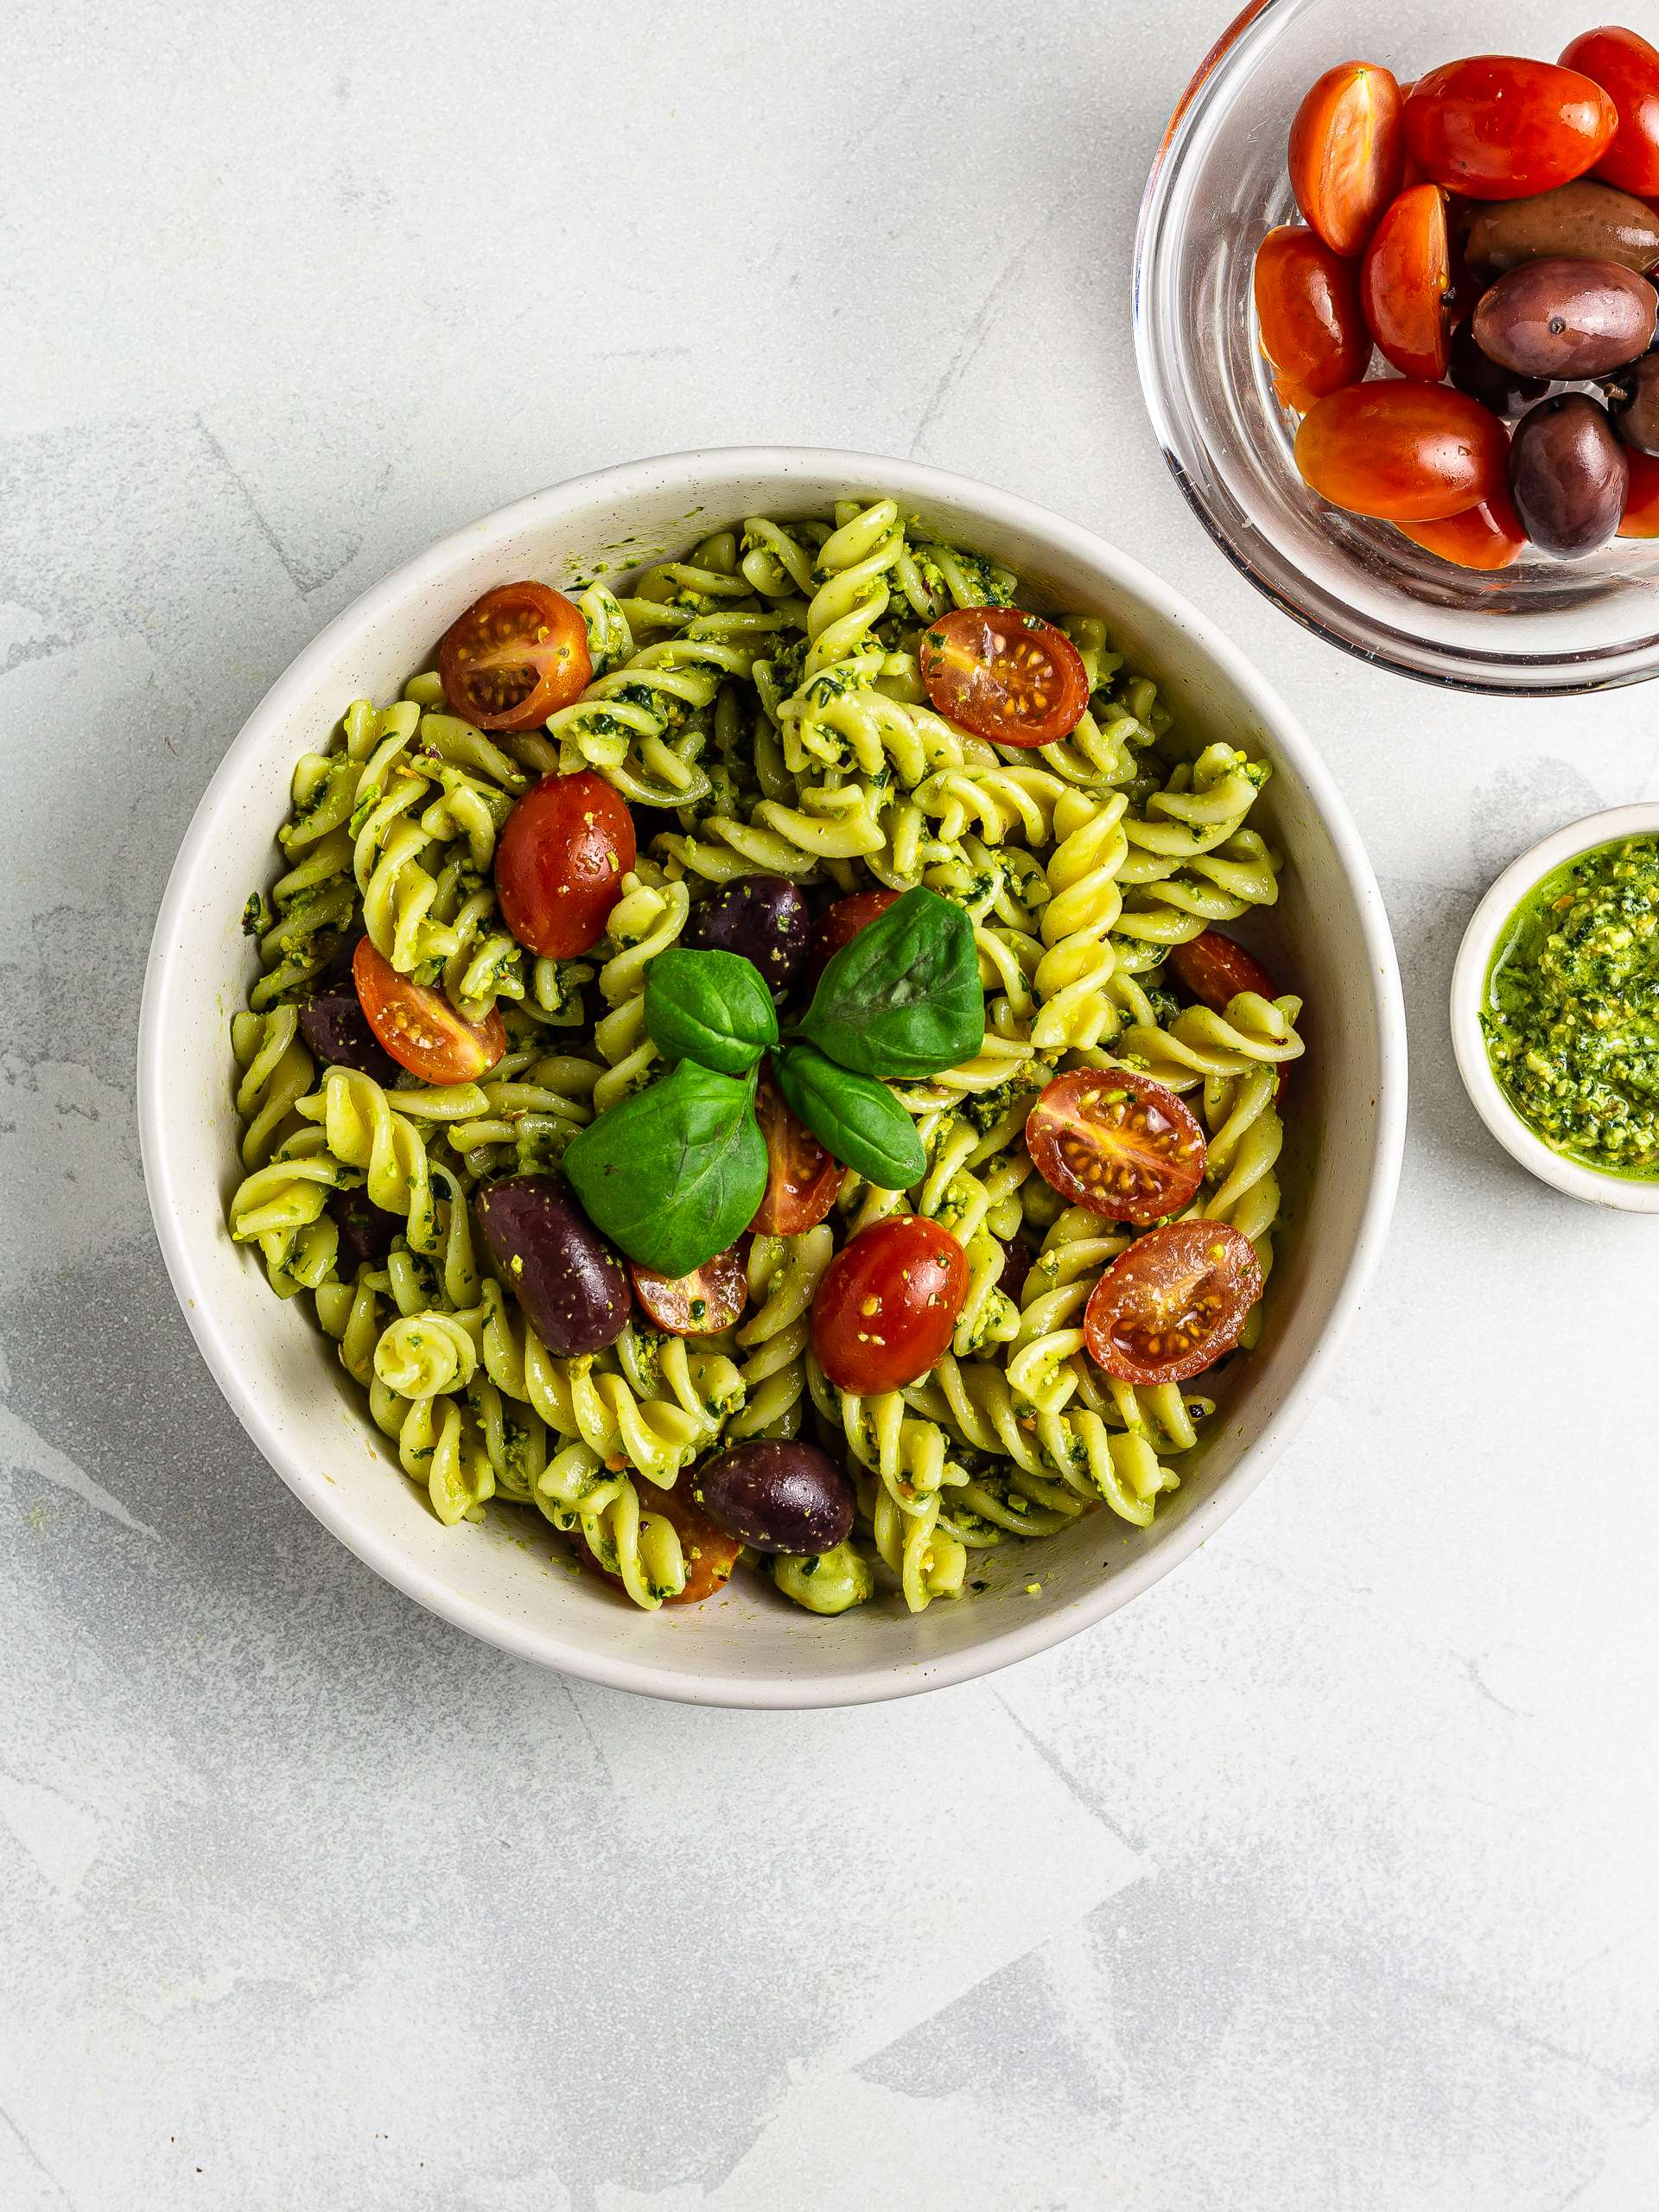 quinoa pasta salad with tomatoes and olives